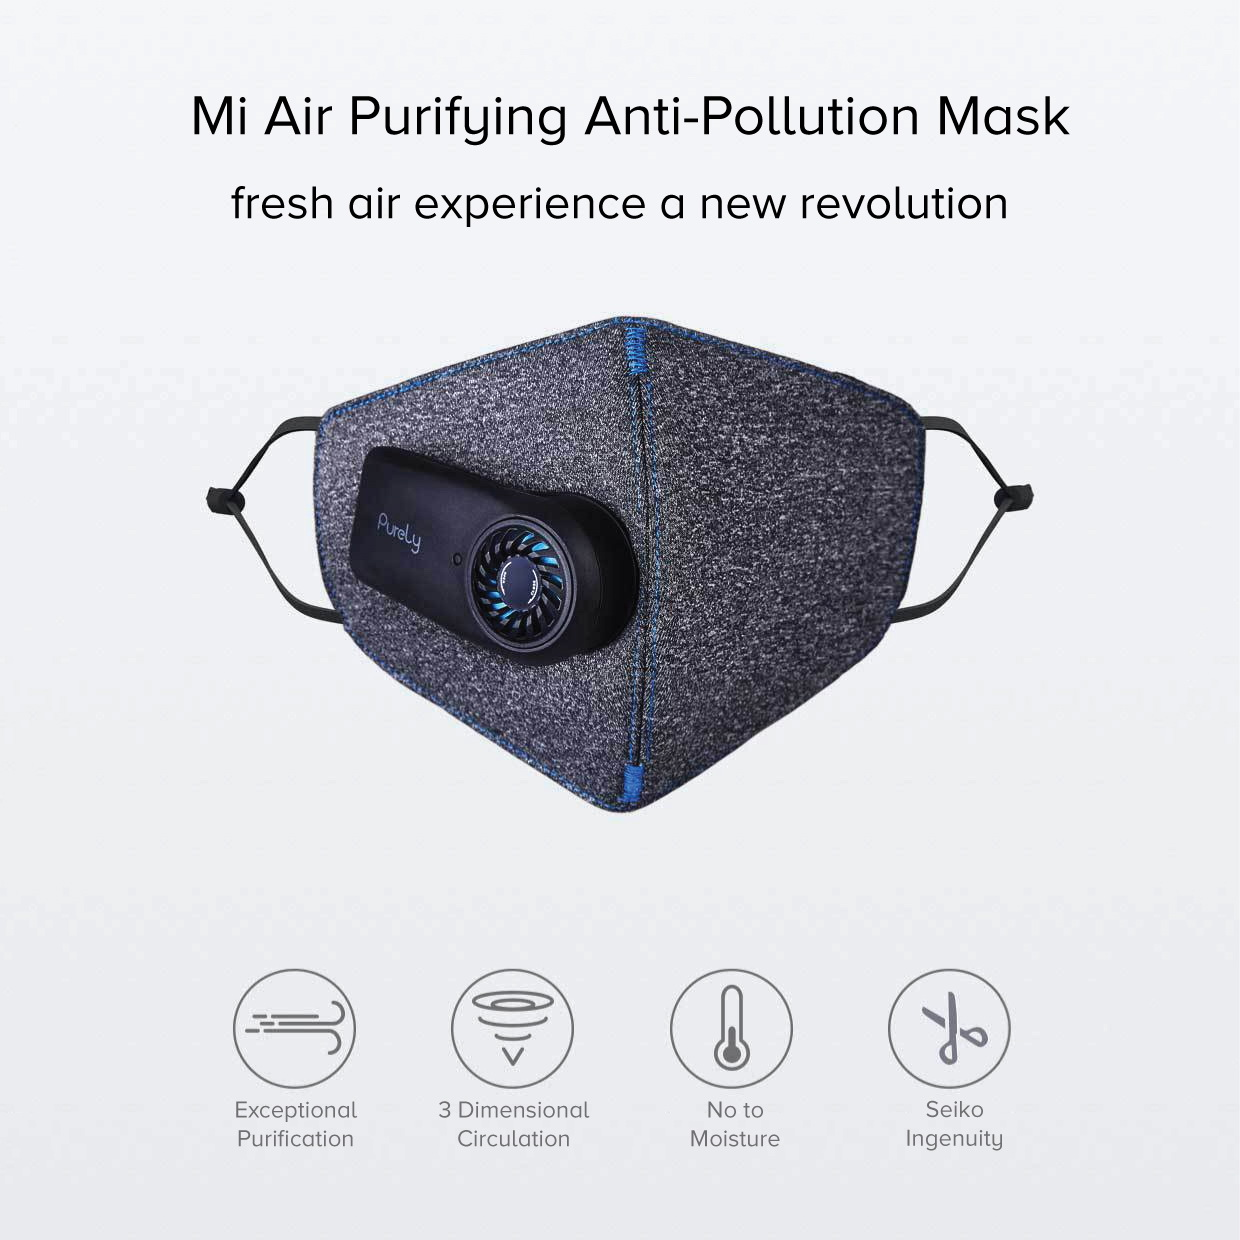 Xiaomi Mi Purely Anti-Pollution Air Face Mask 550mAh Battery